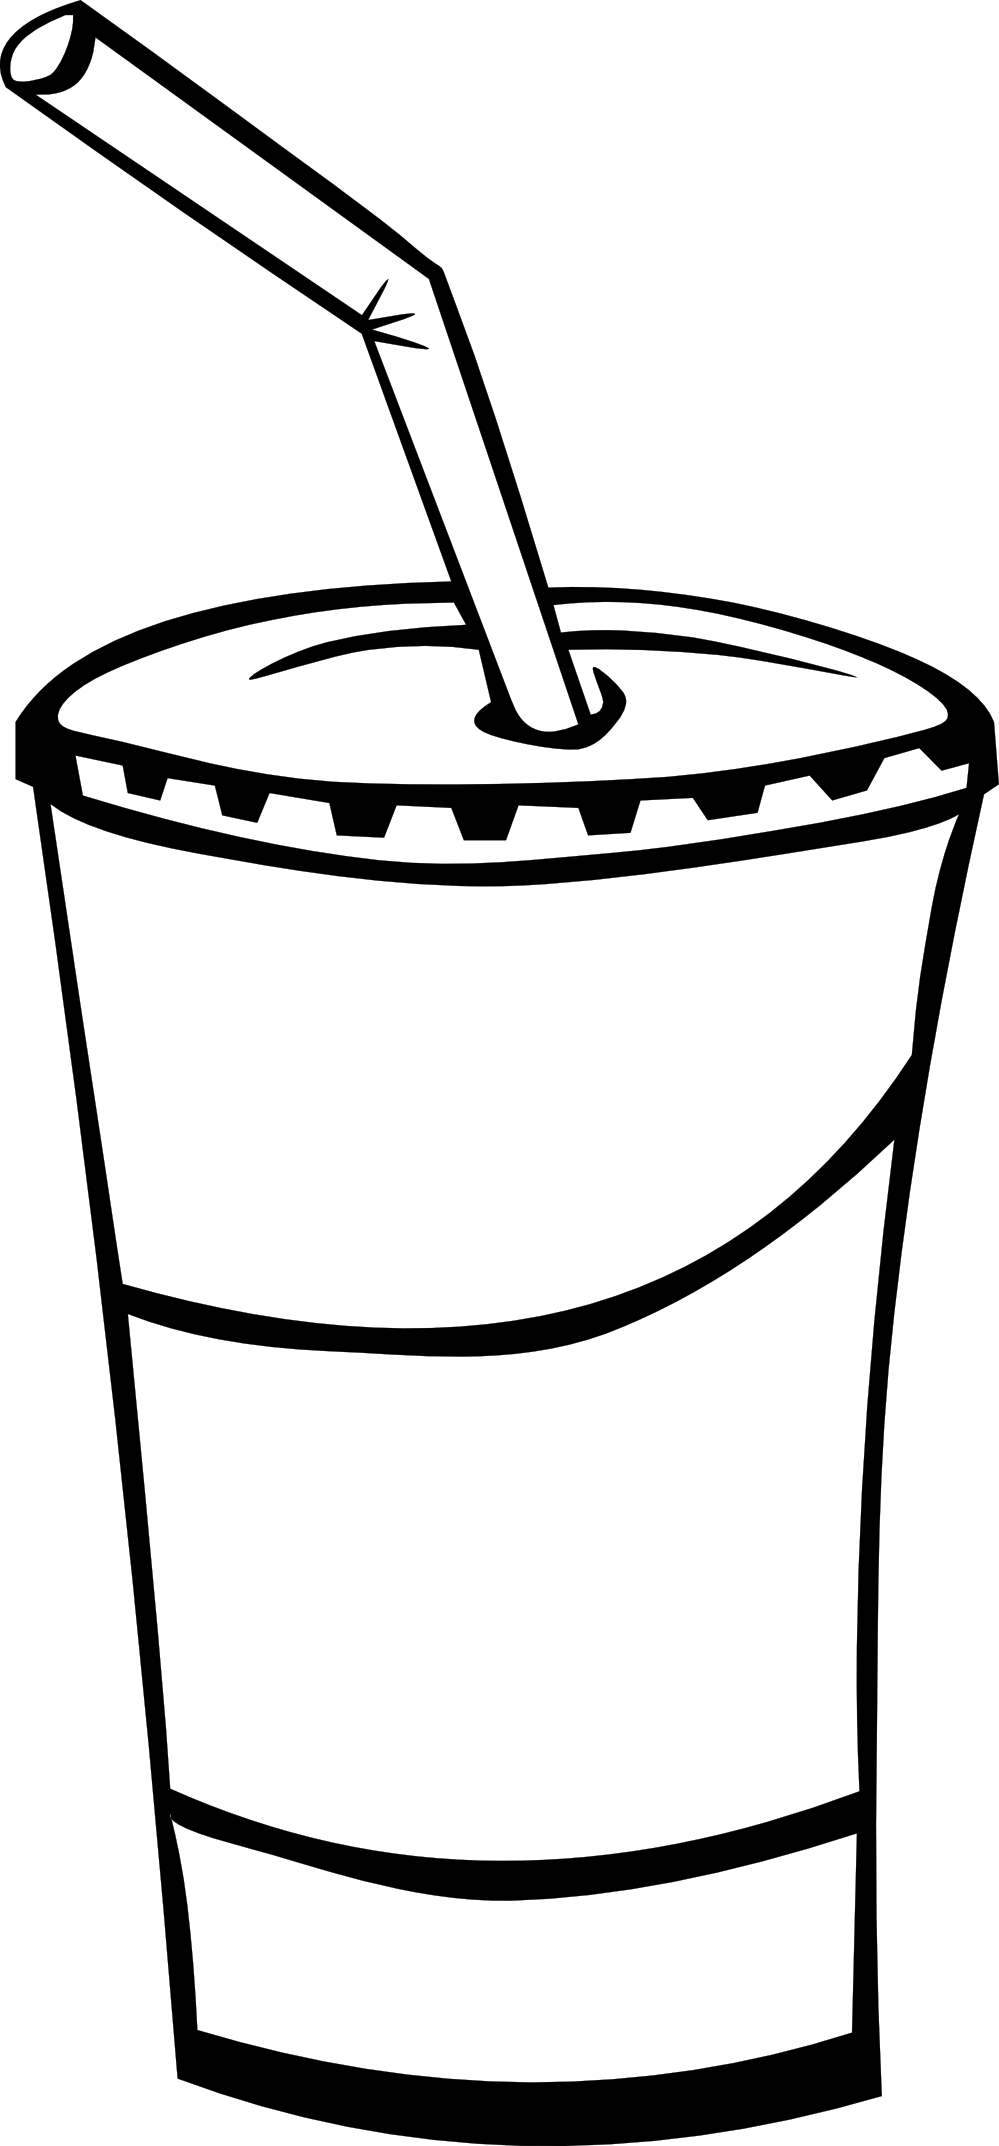 Line Art Food : Junk food clipart black and white panda free